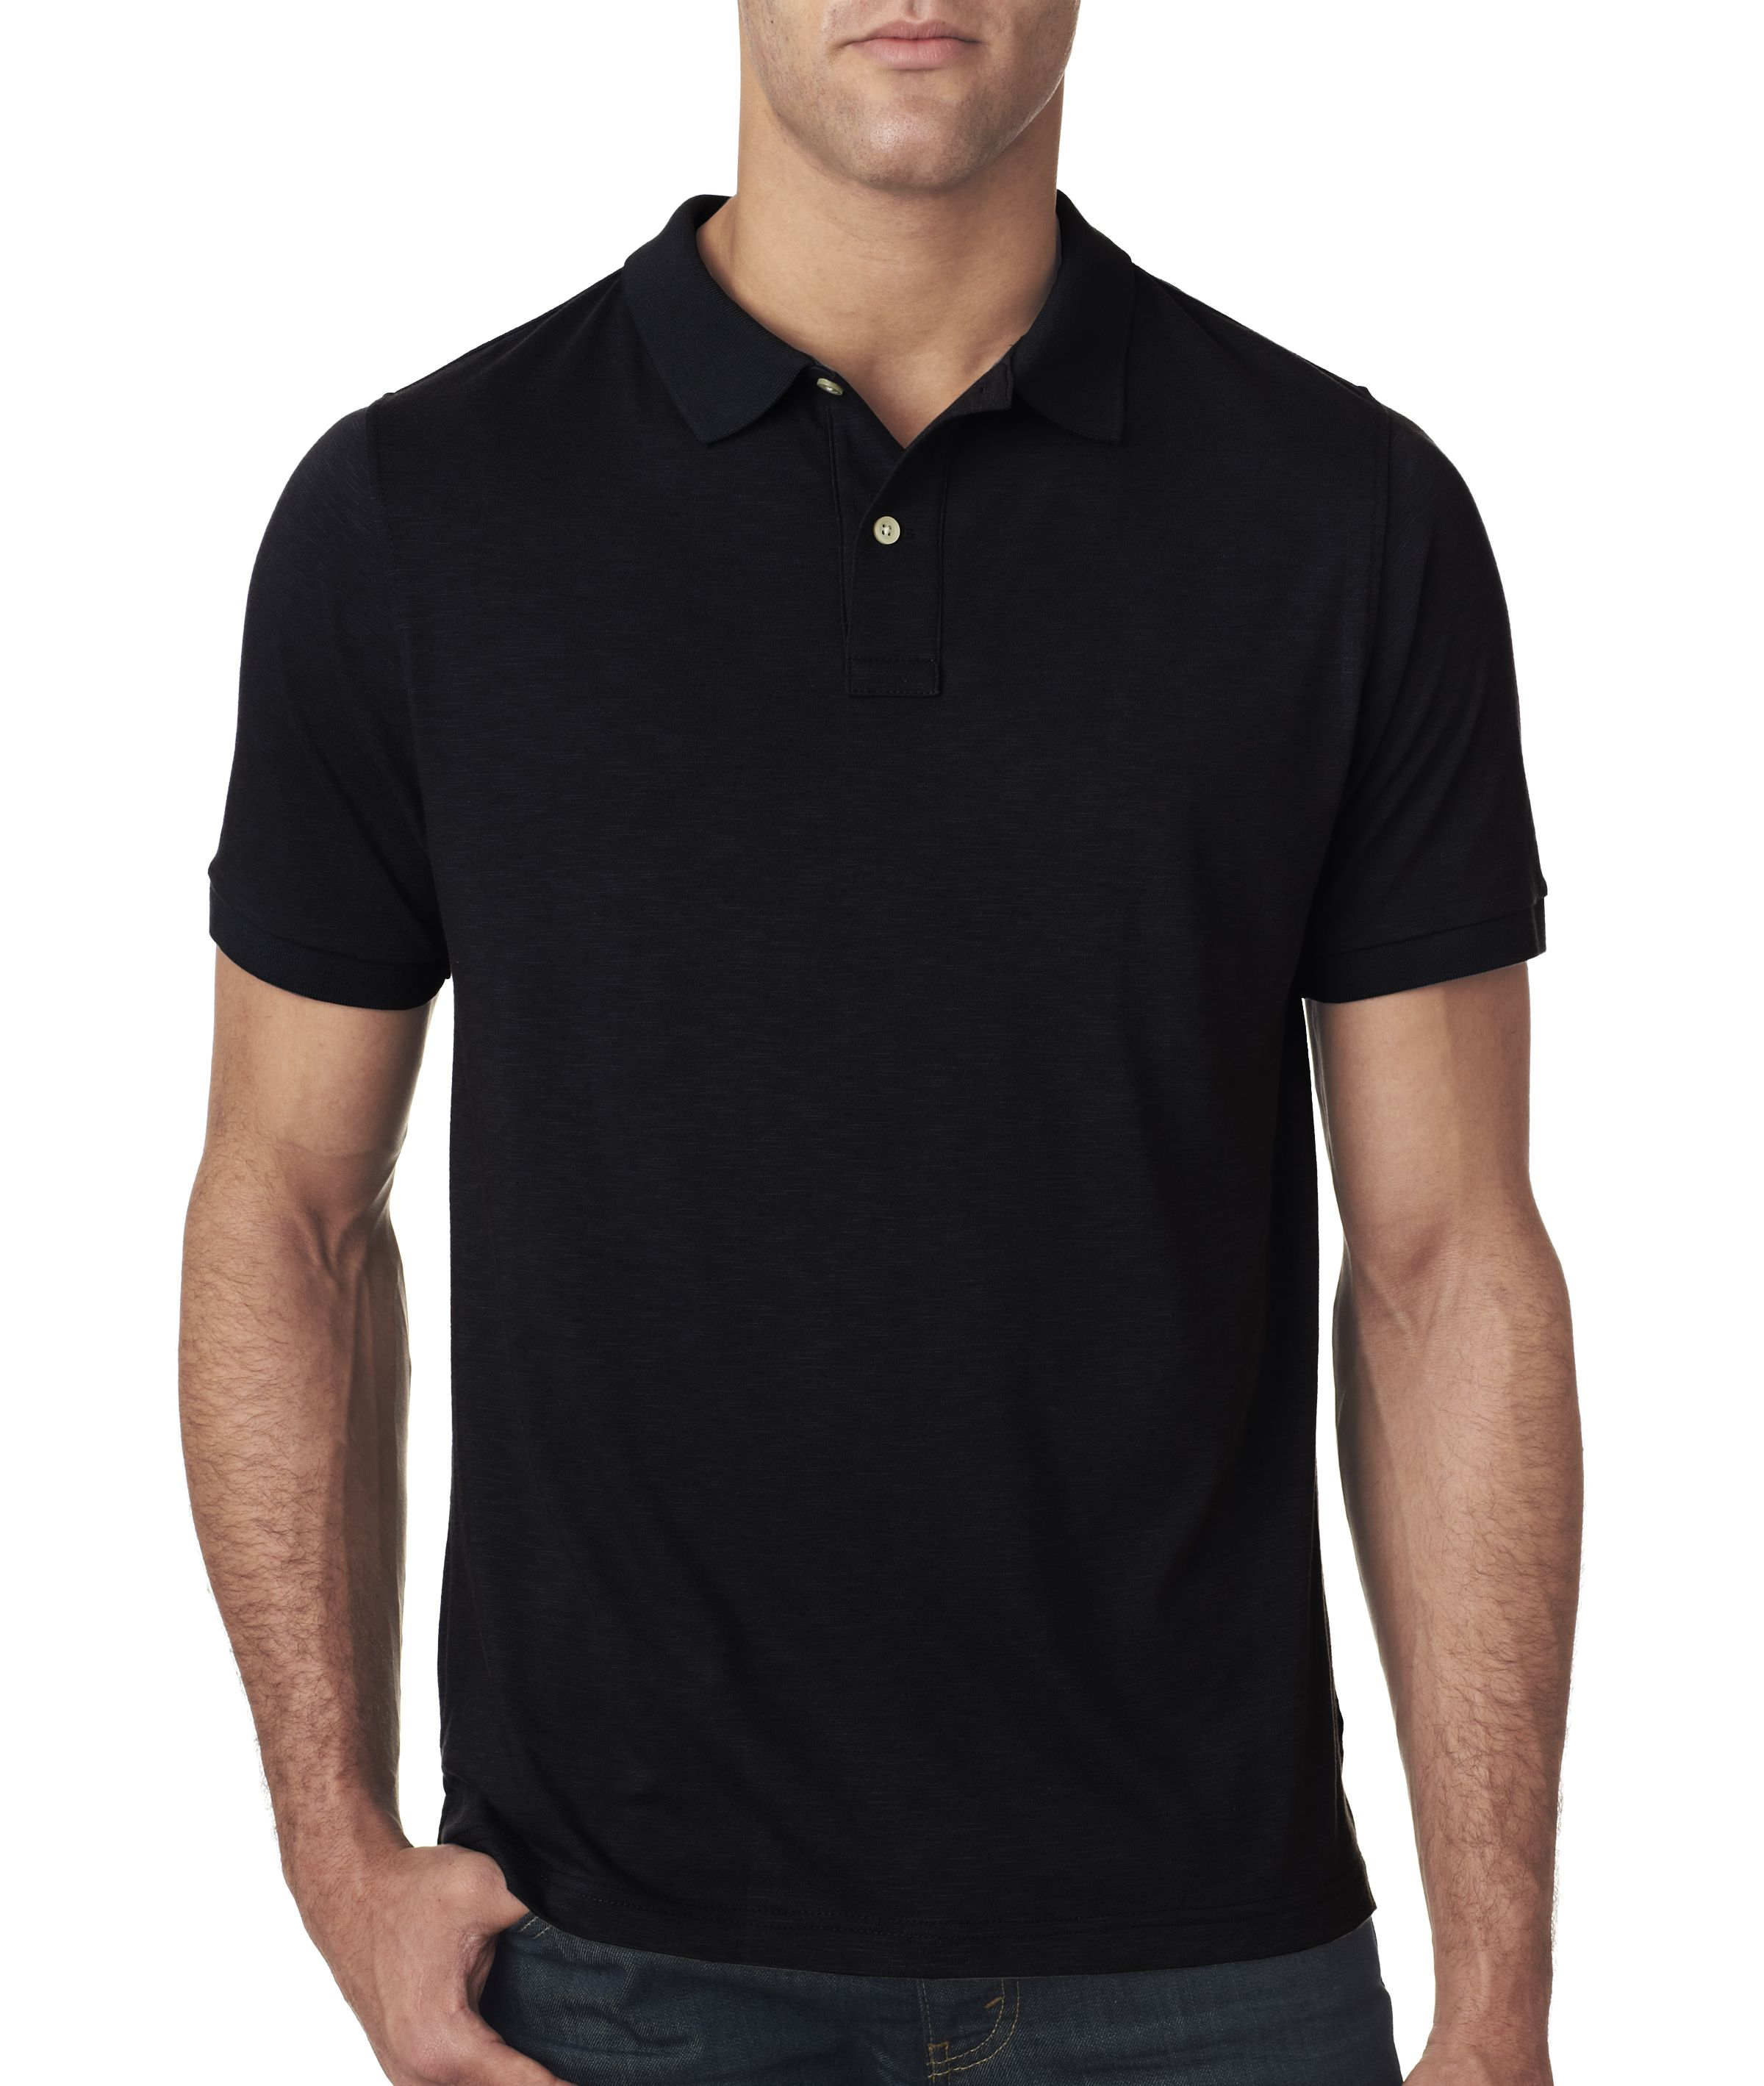 Next level apparel men 39 s slub polo shirt 6420 black for Mens collared t shirts